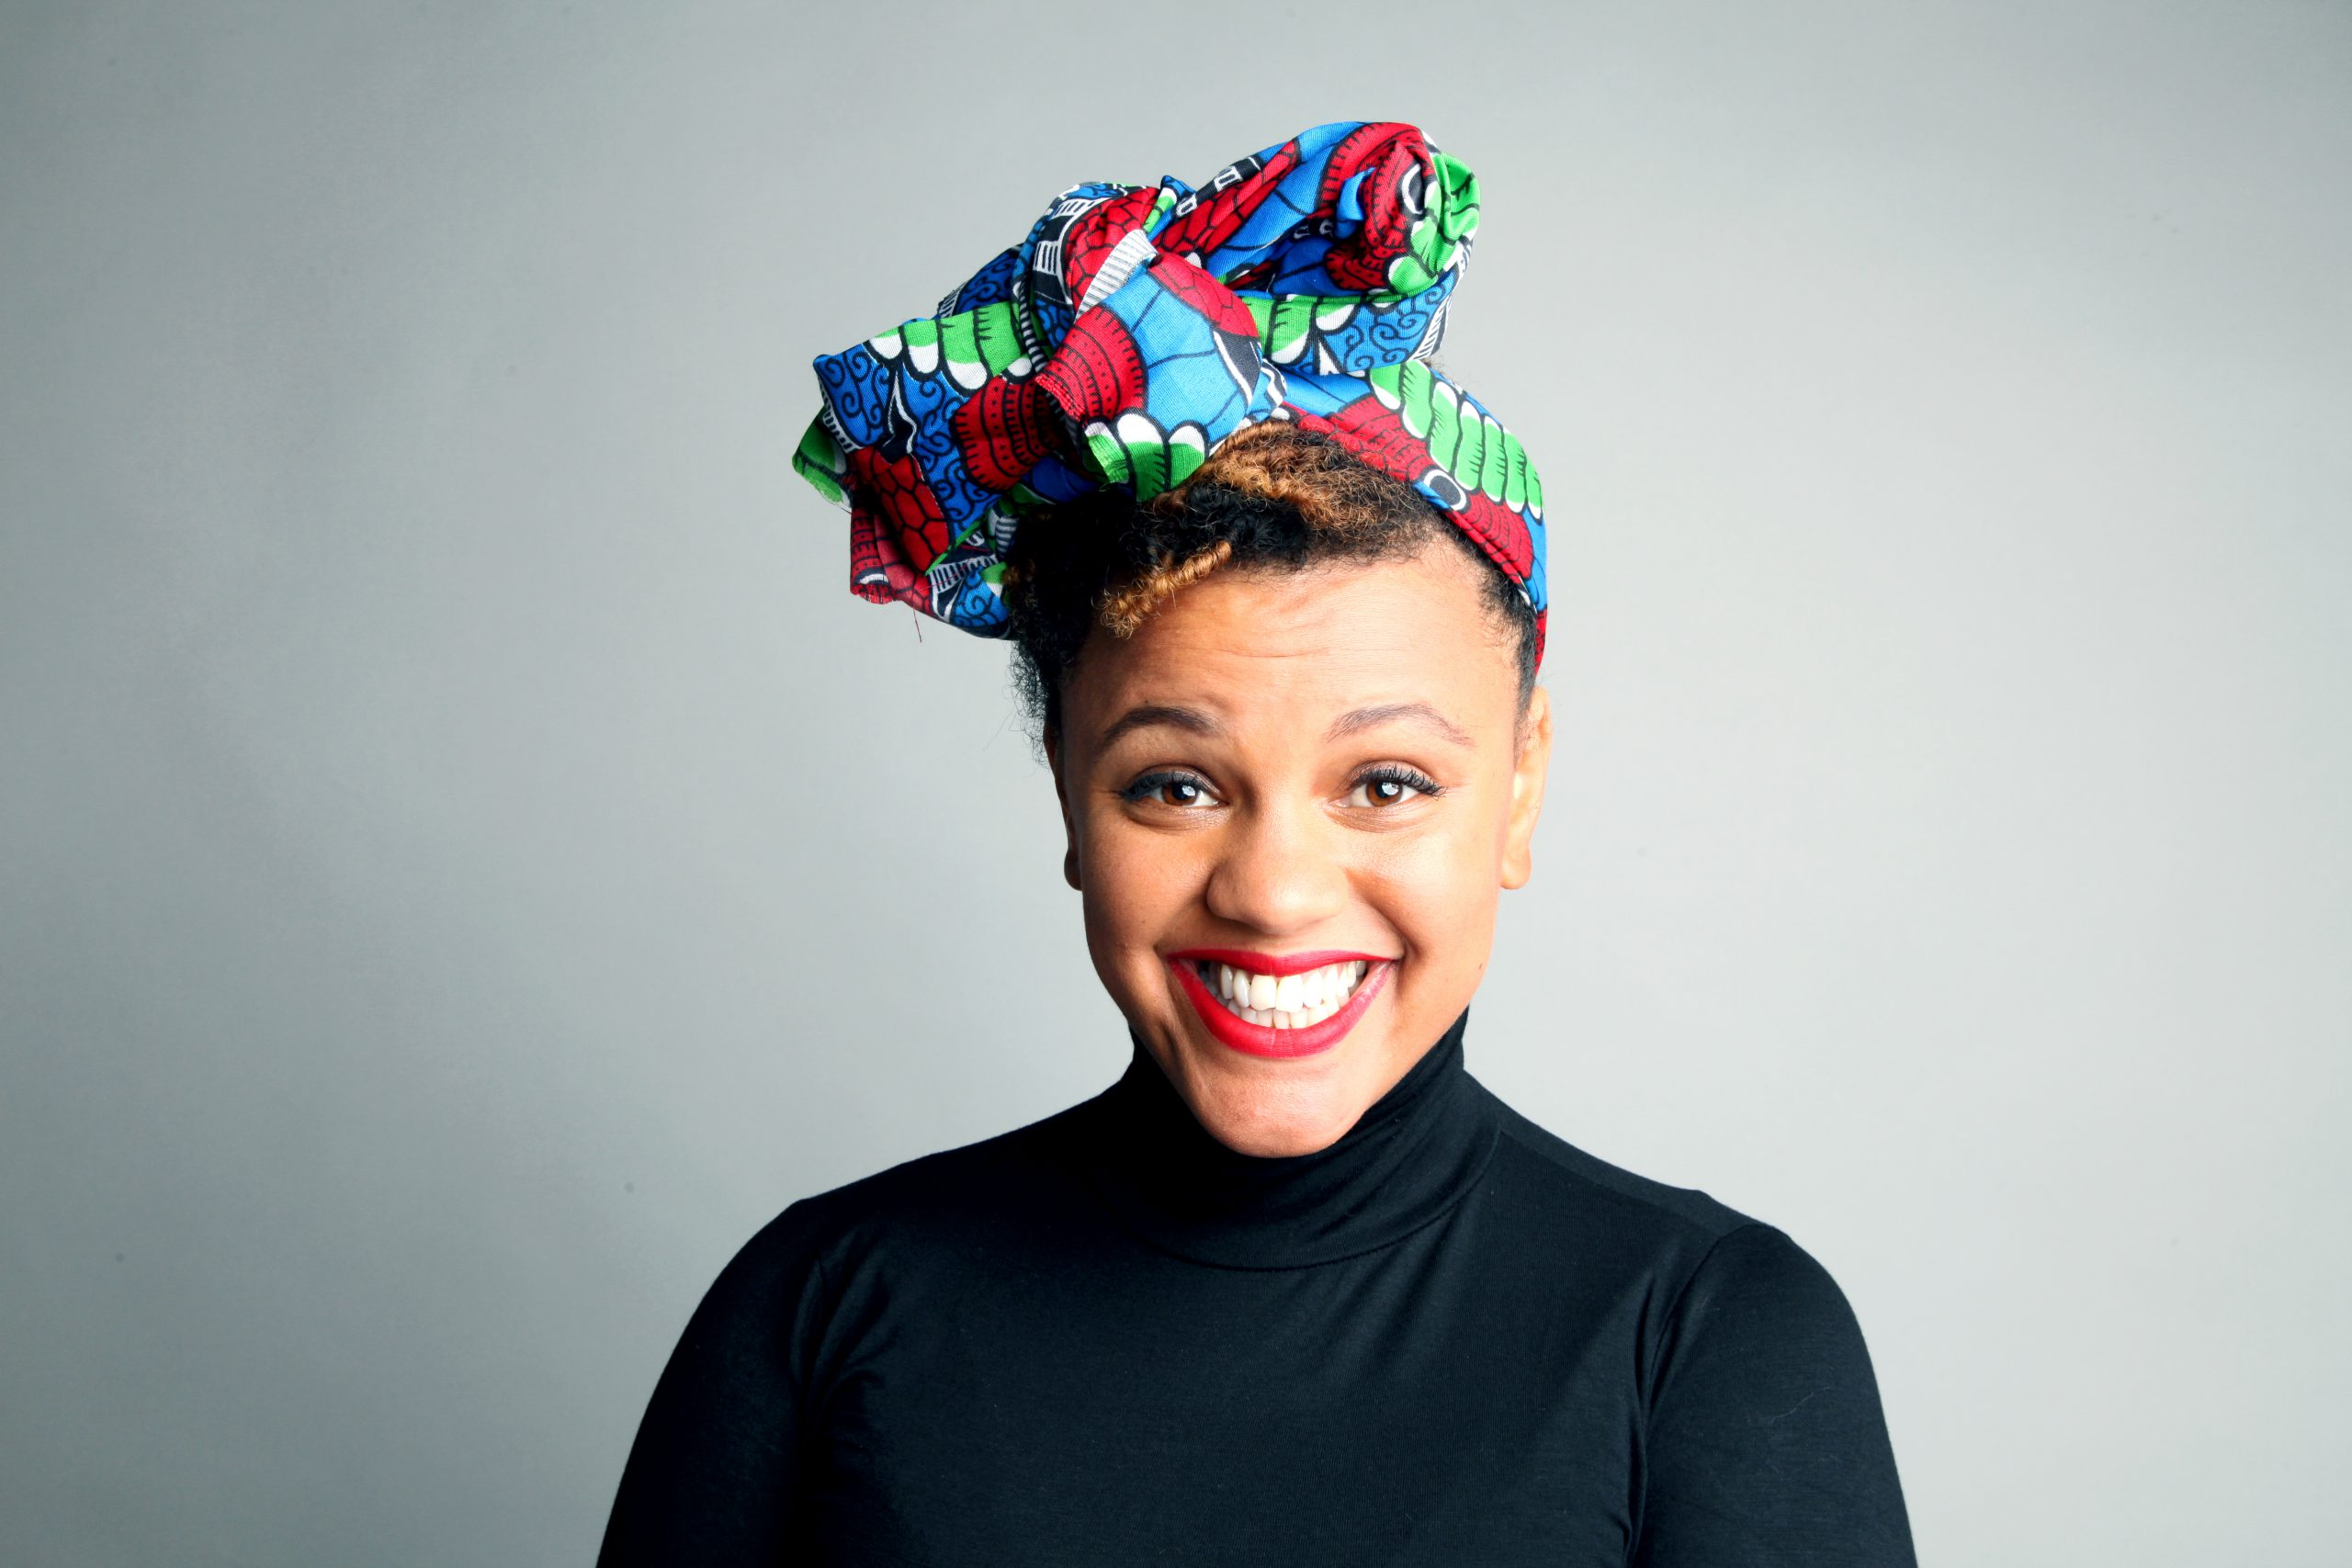 Broadcaster Gemma Cairney gets behind the Frugal Cup